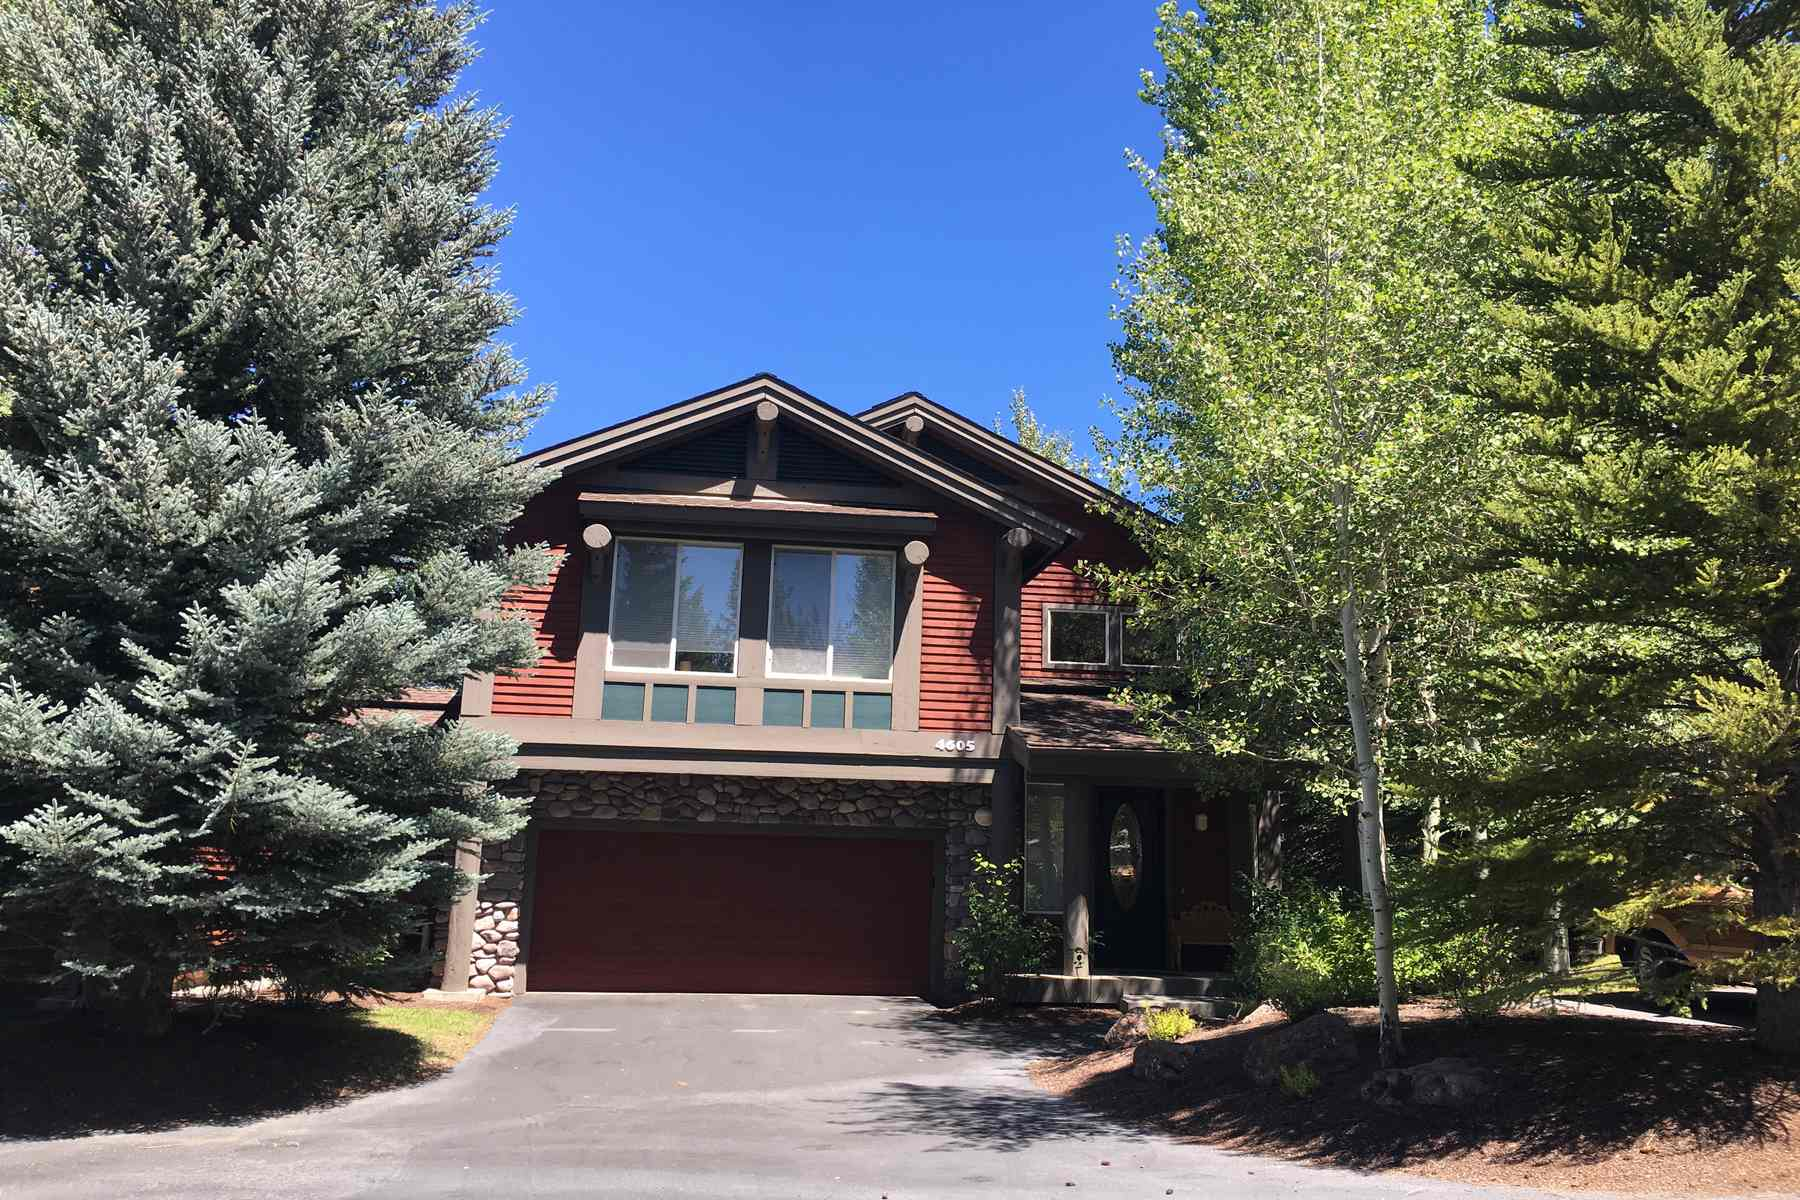 Appartement en copropriété pour l Vente à Quiet, Secluded Townhome 4605 Arrowwood Dr Elkhorn, Sun Valley, Idaho, 83353 États-Unis